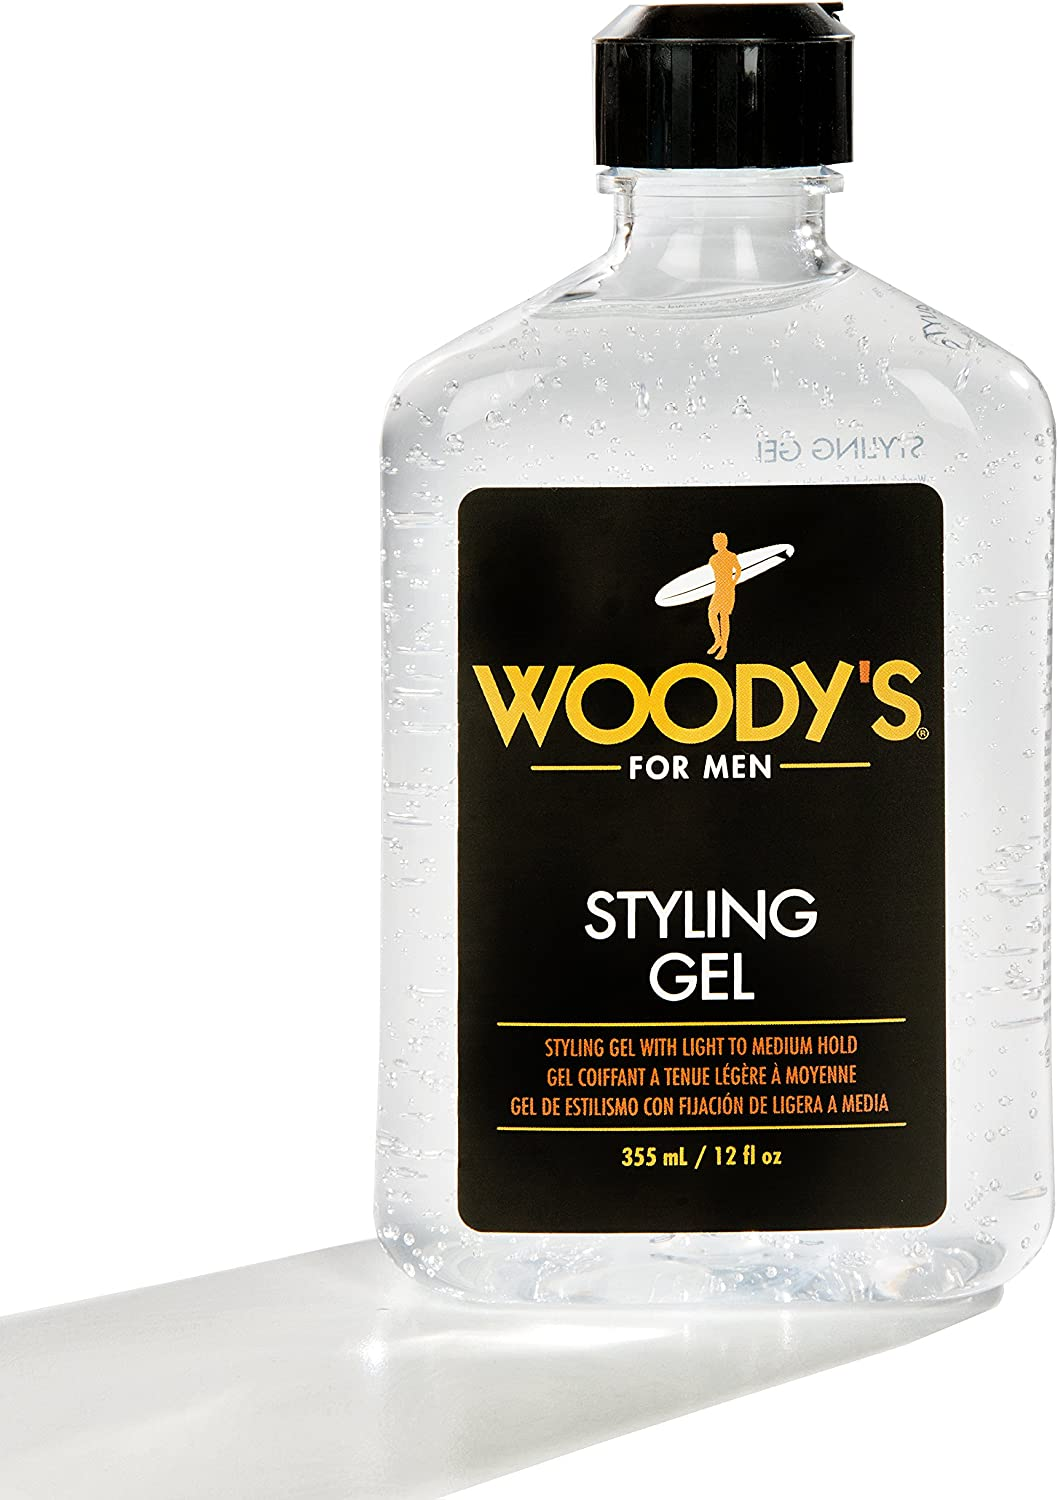 Woody's Styling Gel with Light to Hold - Max 55% OFF Quality Genuine Free Shipping Grooming Medium